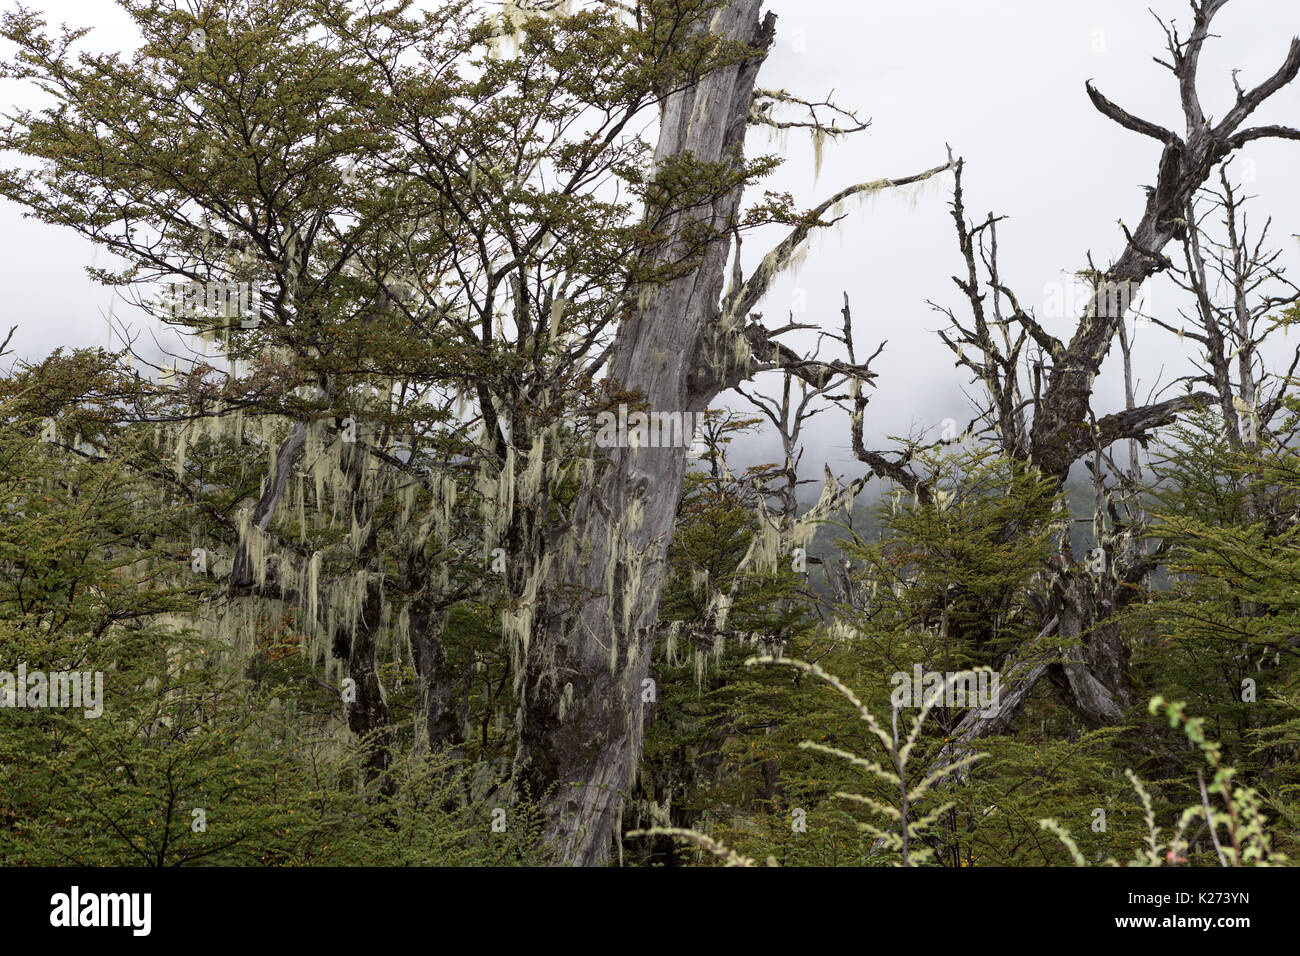 Lichen on trees Balmaceda to Puerto Rio Tranquilo route highway road 7 Patagonia  Chile - Stock Image